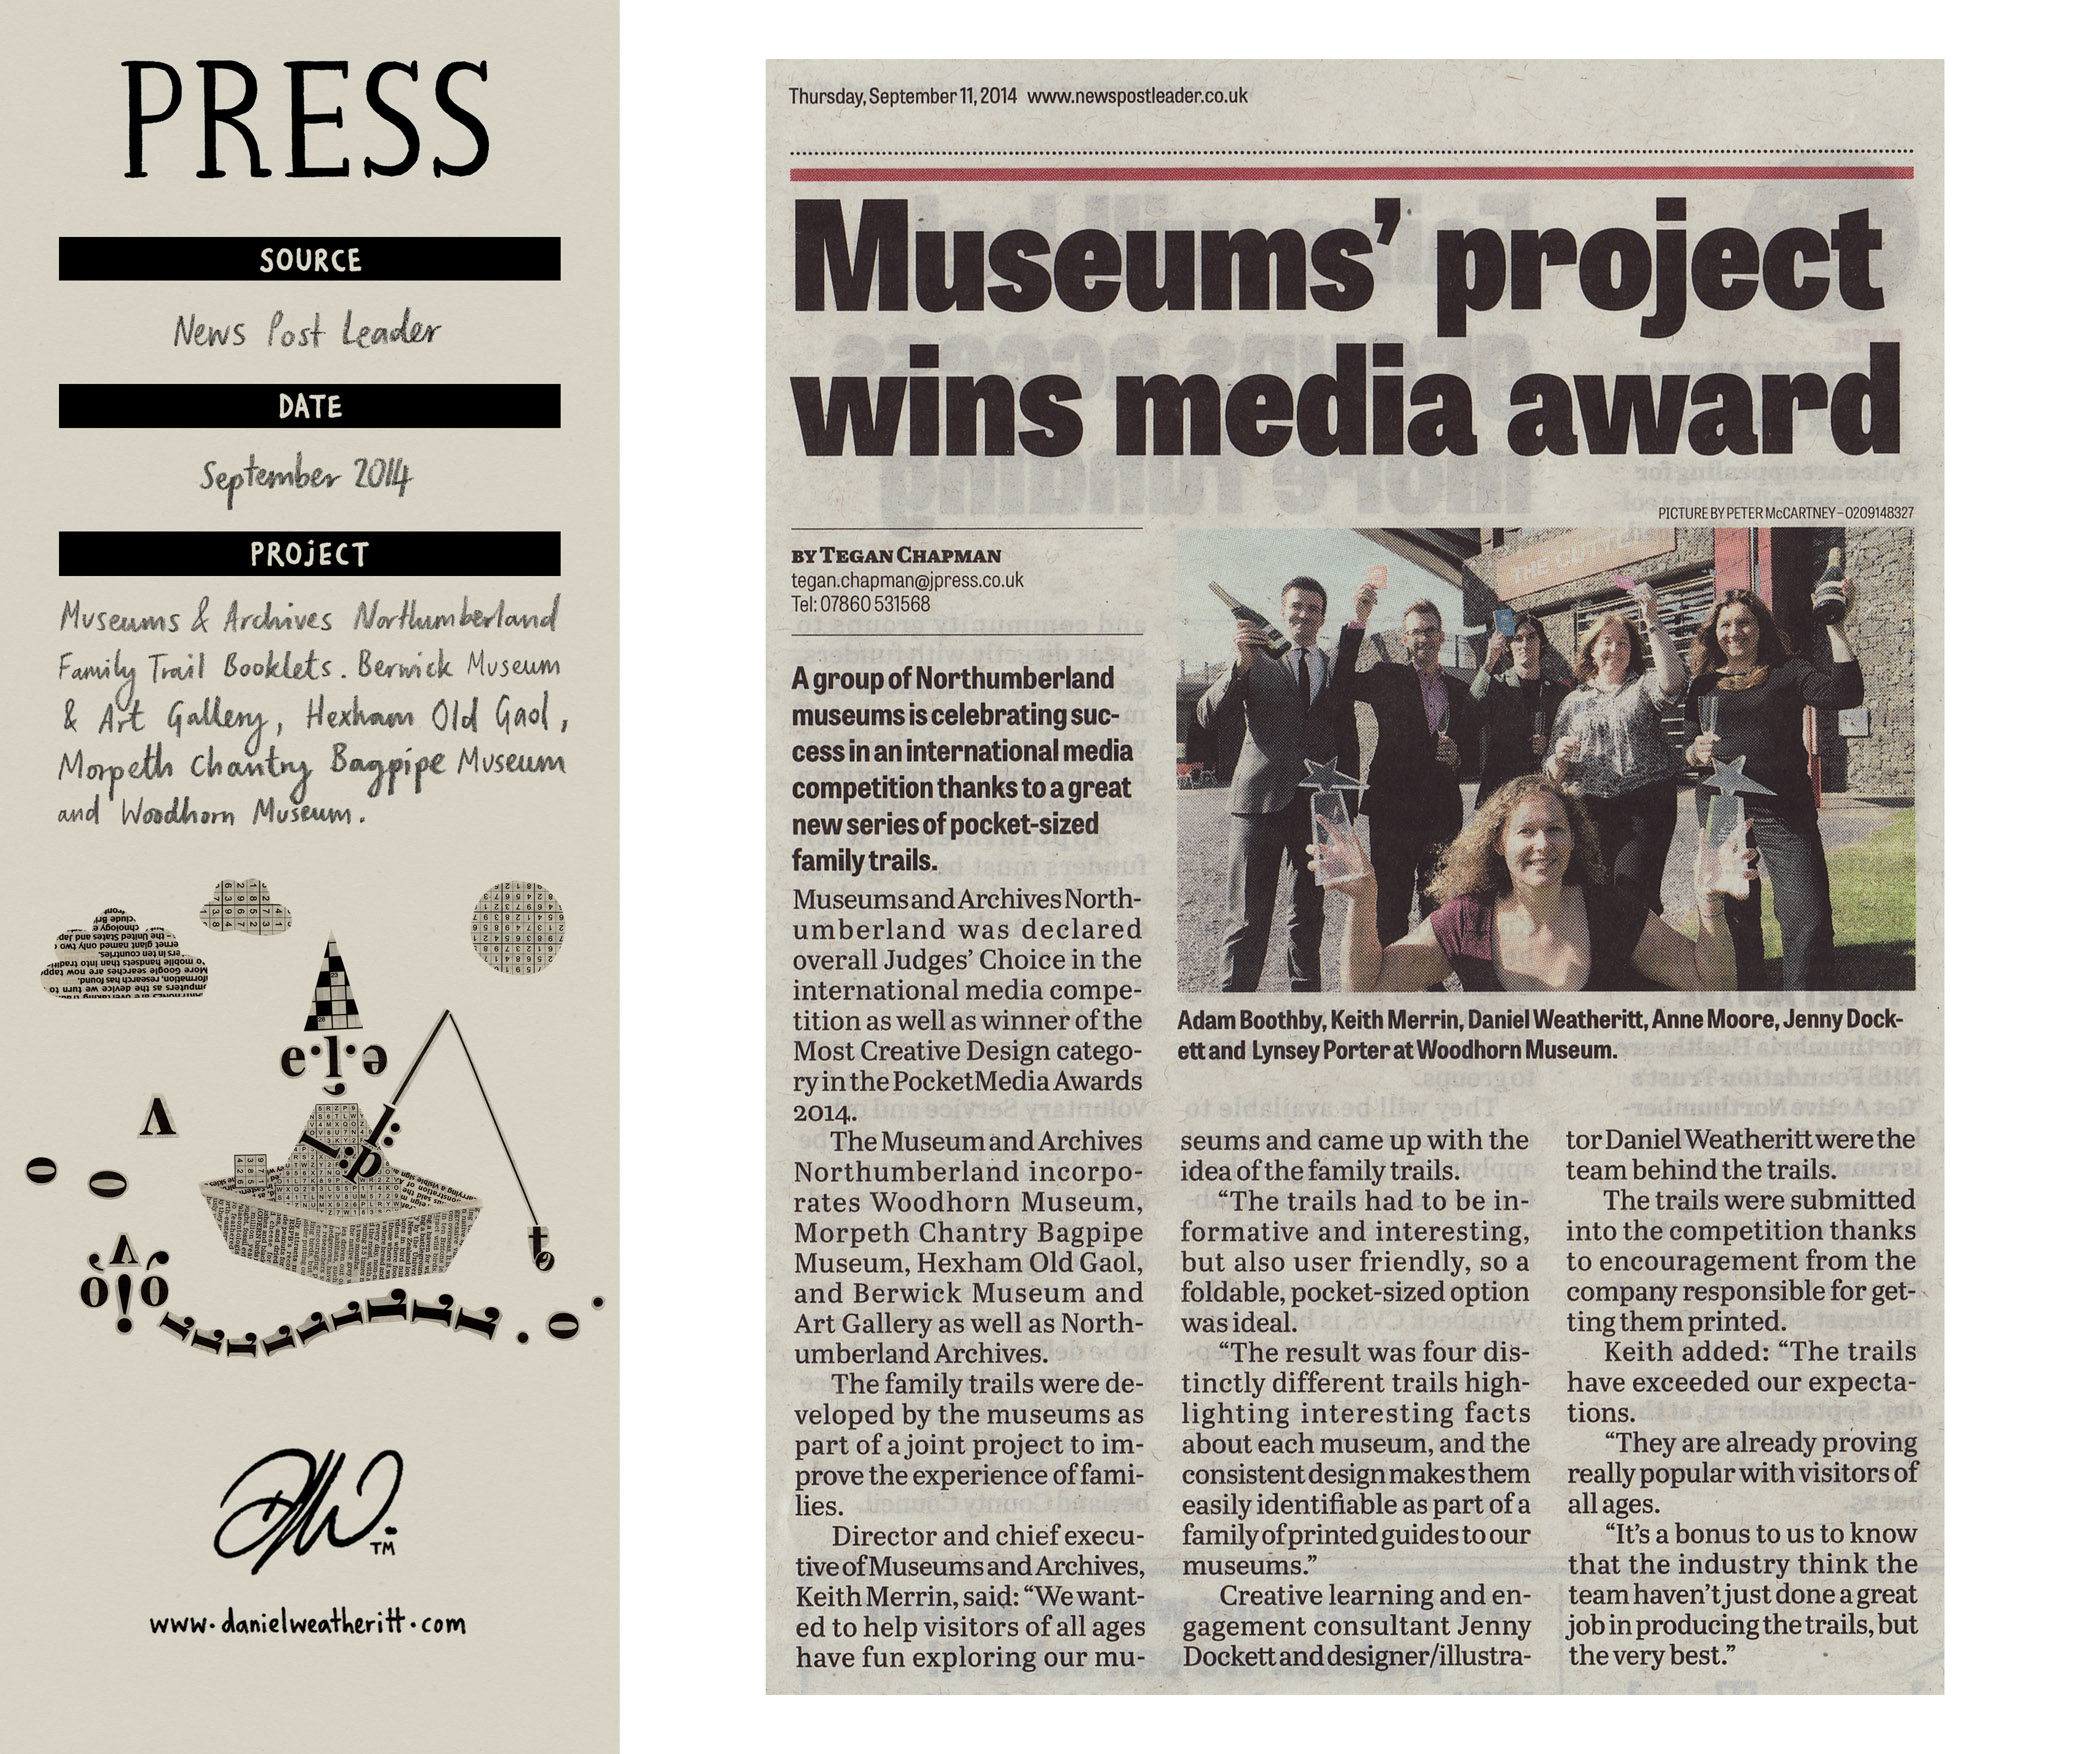 <b>Northumberland Museum Family Trails</b> - News Post Leader Article